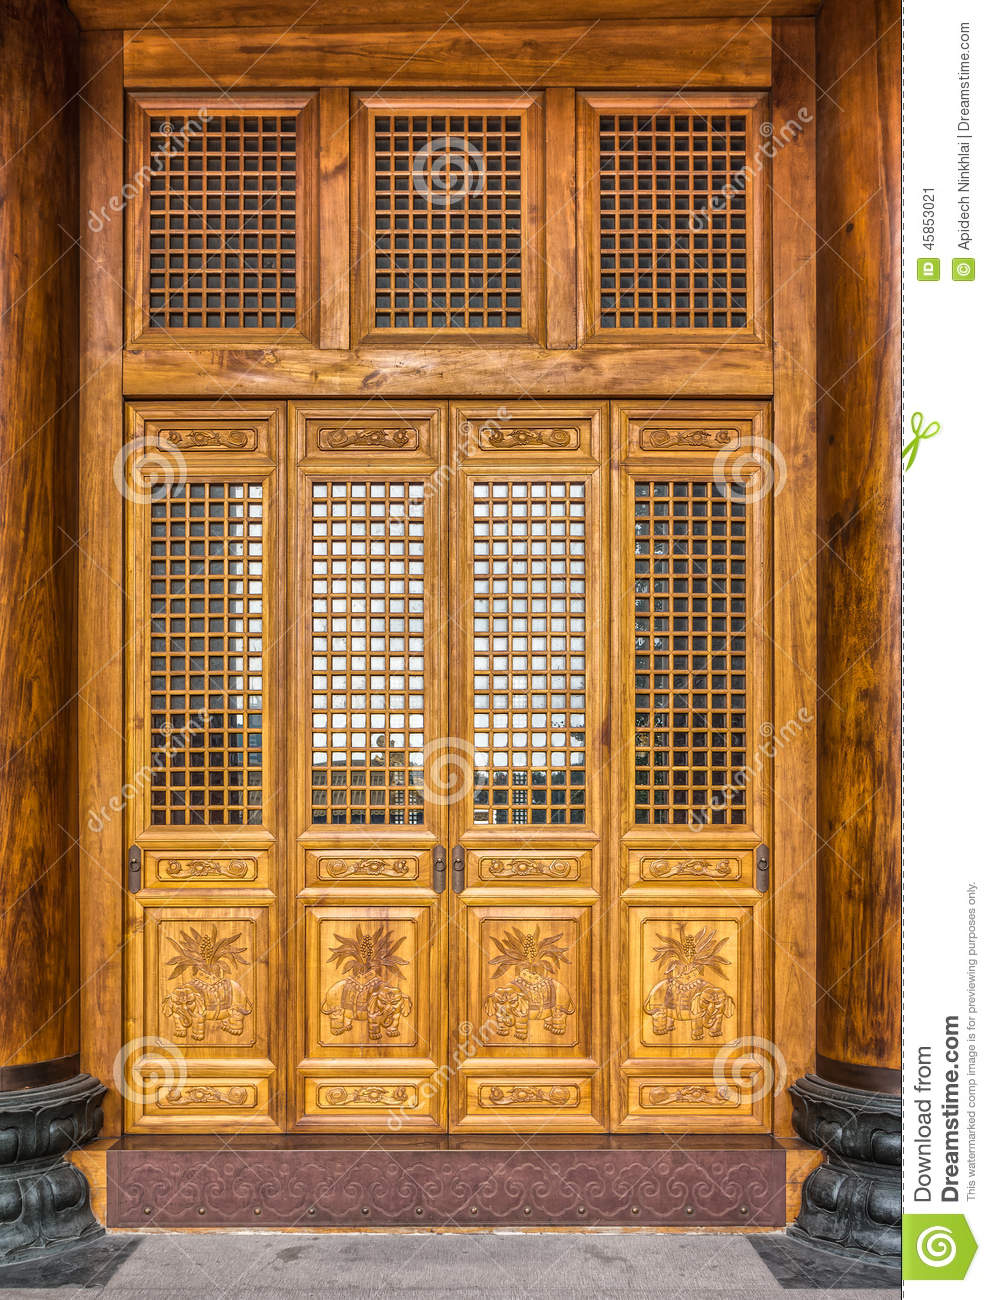 The antique Chinese wooden carved doors - The Antique Chinese Wooden Carved Doors Stock Image - Image Of